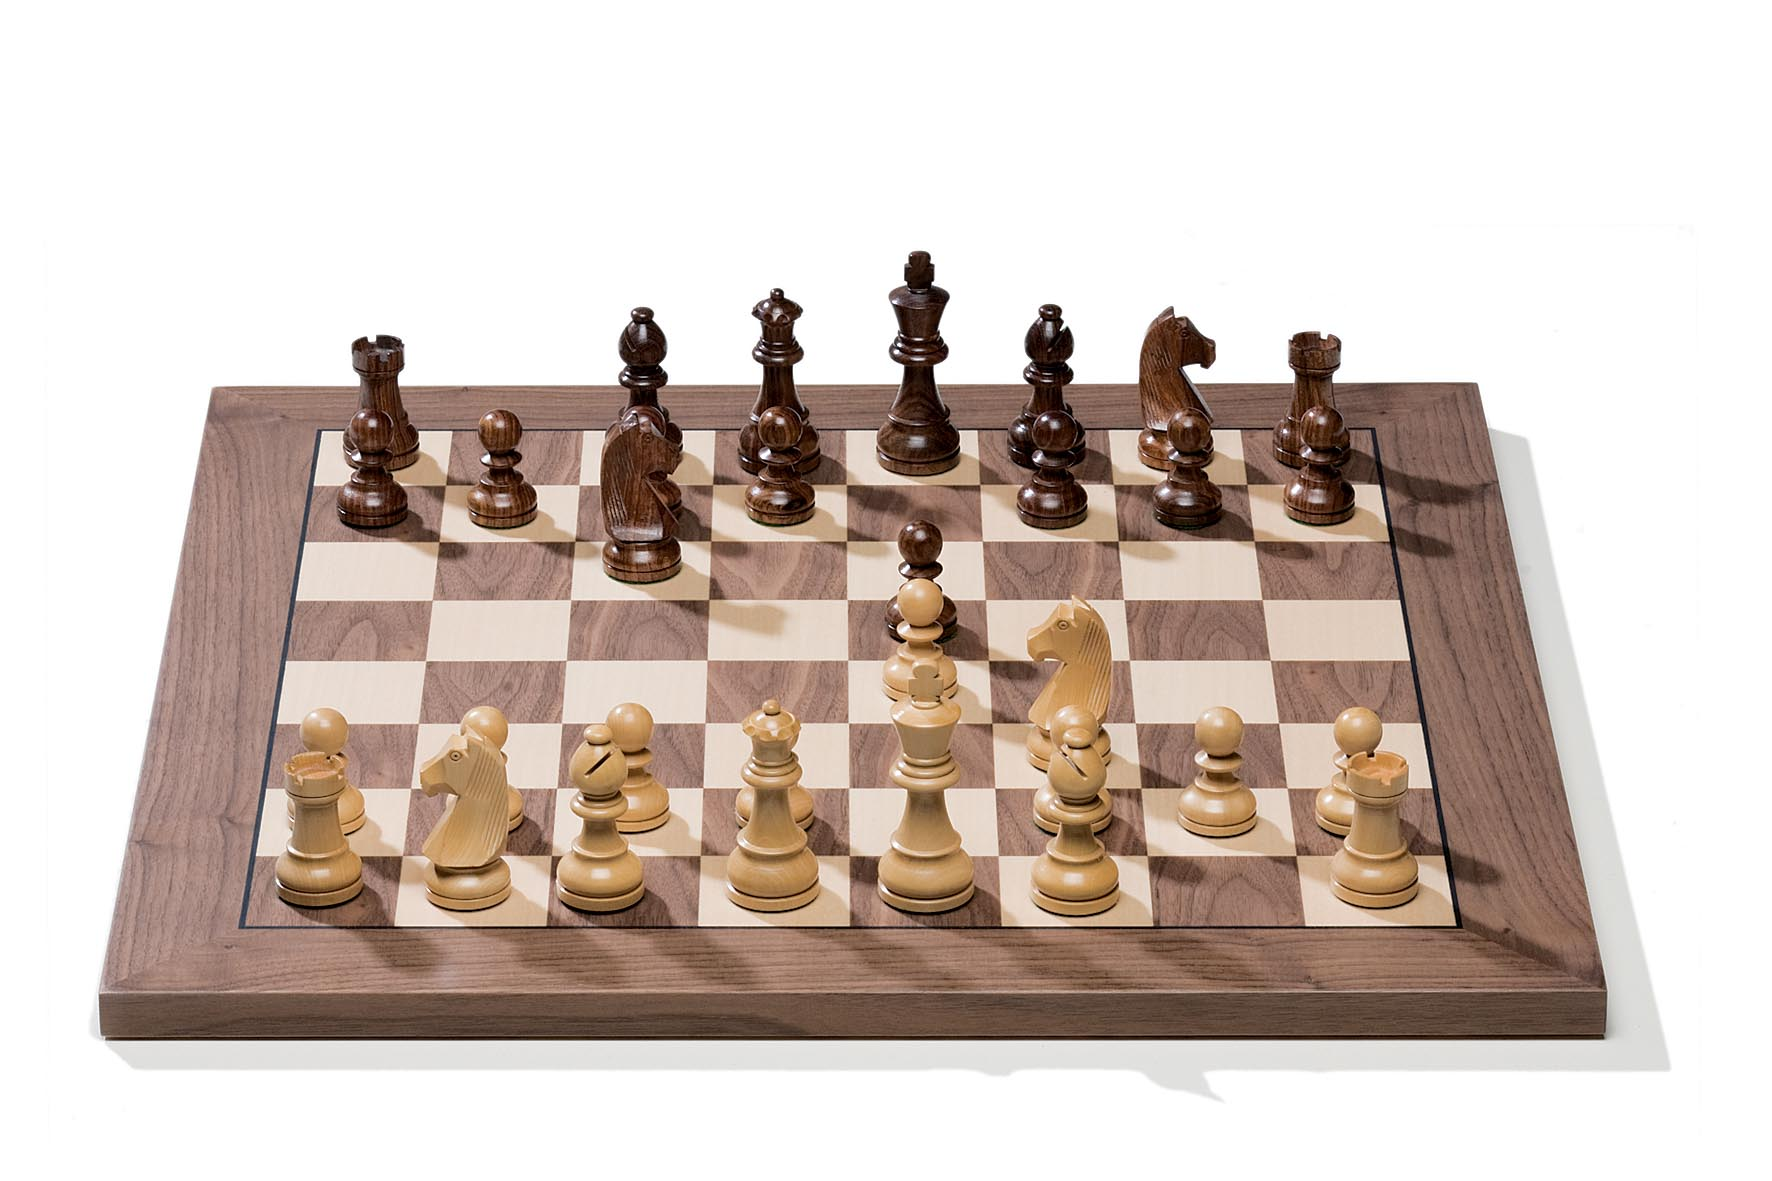 Chess shop usb electronic chess board buy cheap online - Inexpensive chess sets ...